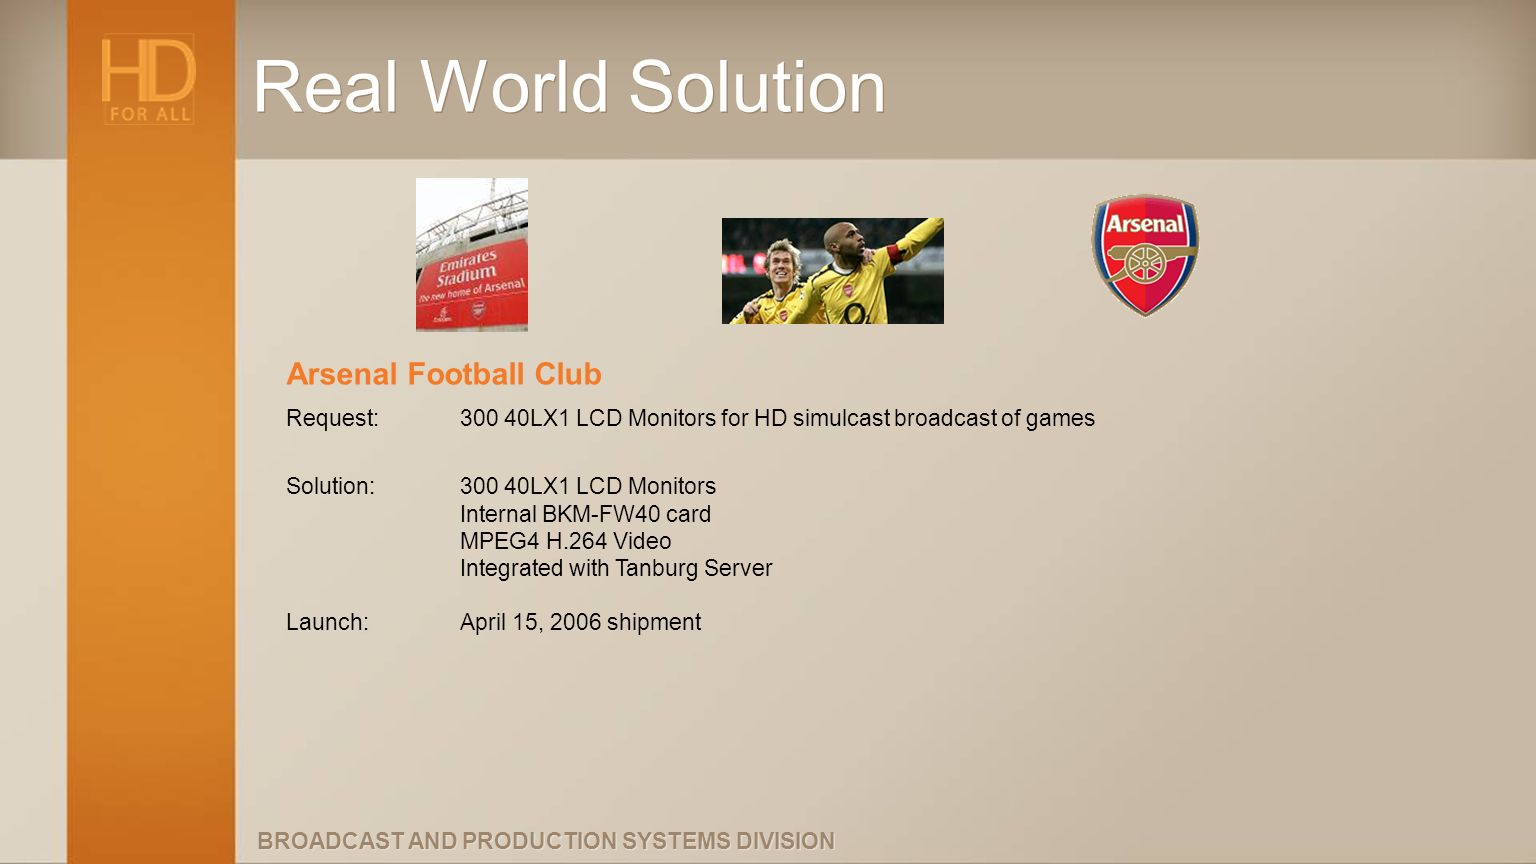 Real World Solution Arsenal Football Club